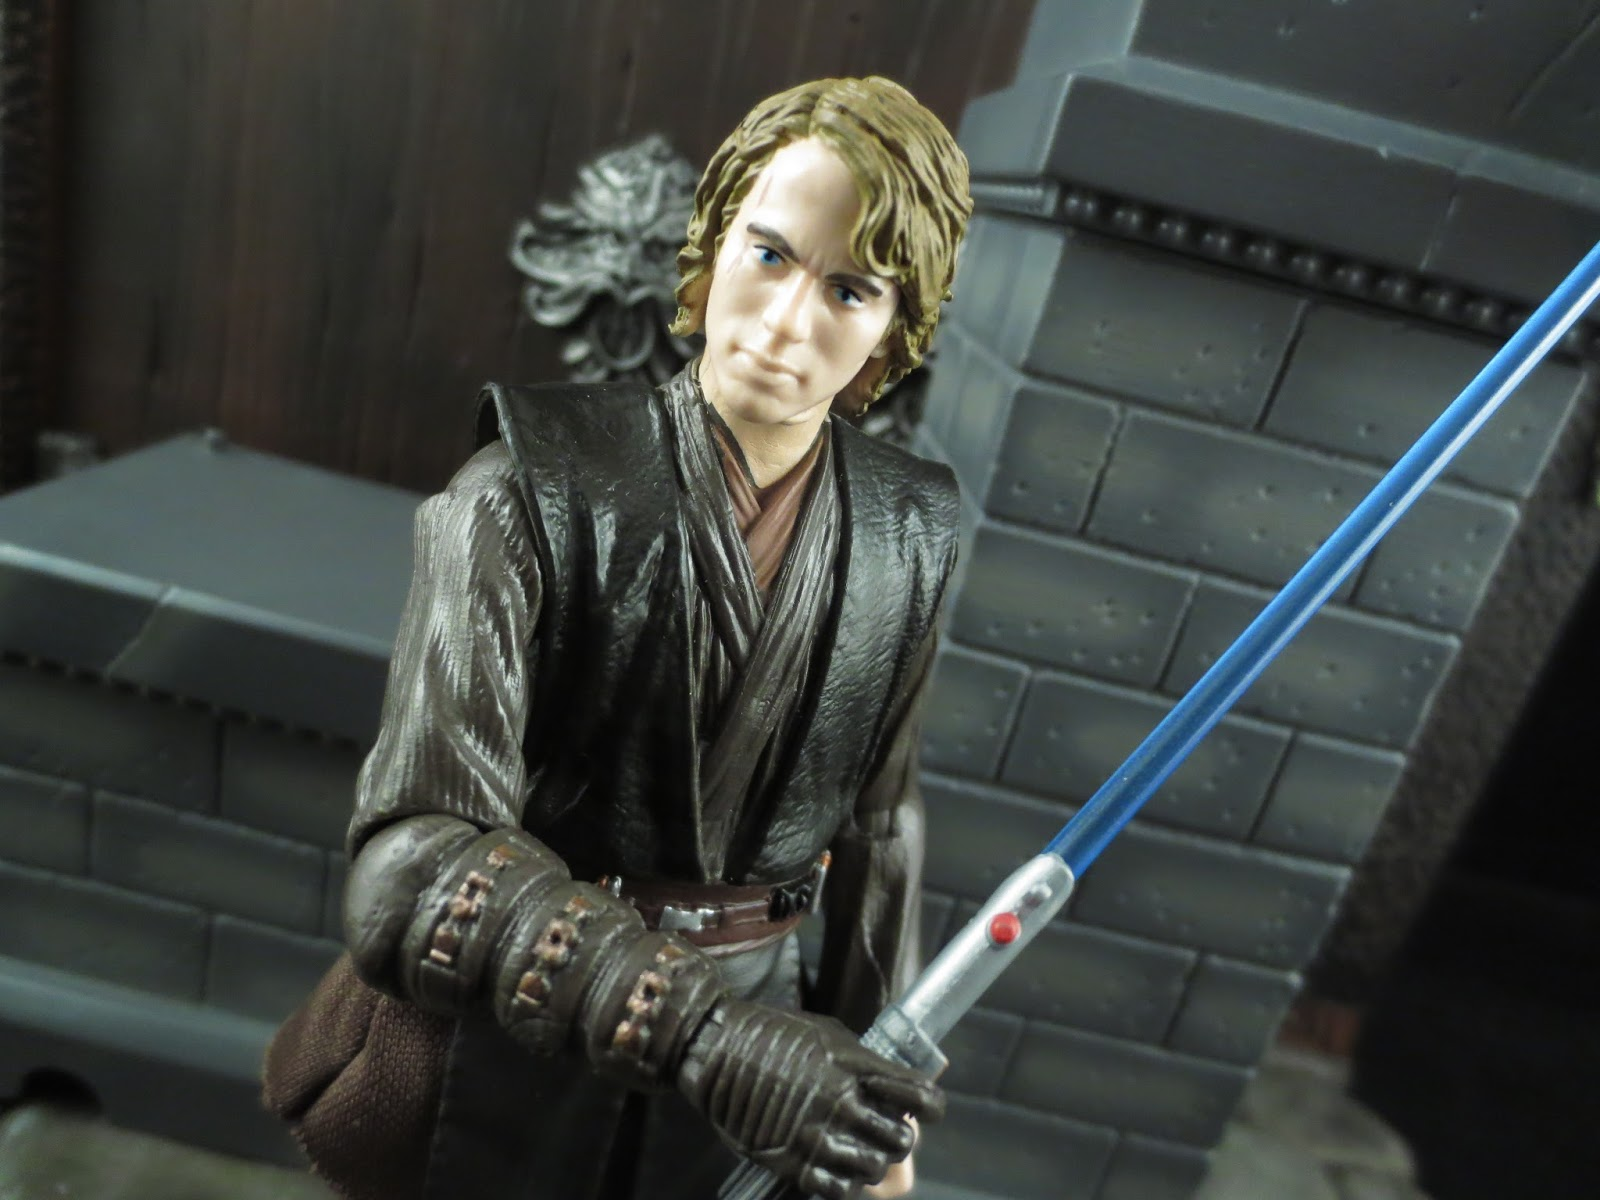 STAR WARS BLACK SERIES 6 INCH BASIC SITH KYLO REN BODY GREAT FOR CUSTOMS